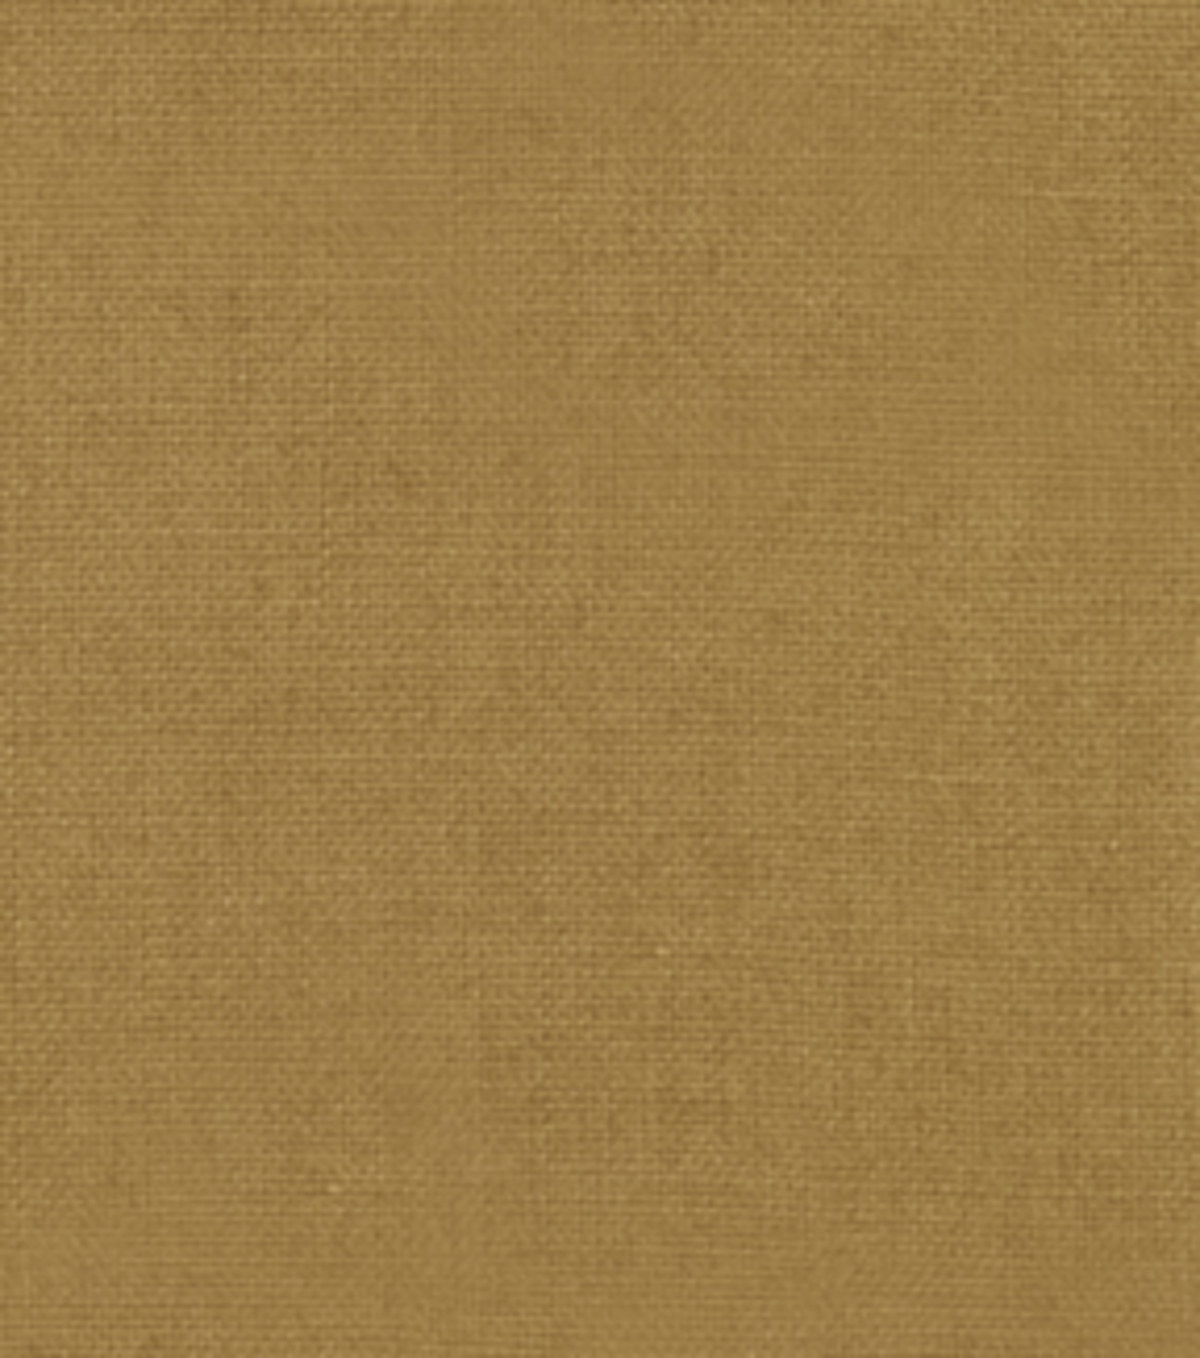 Home Decor 8\u0022x8\u0022 Fabric Swatch-Signature Series Sigourney Fawn